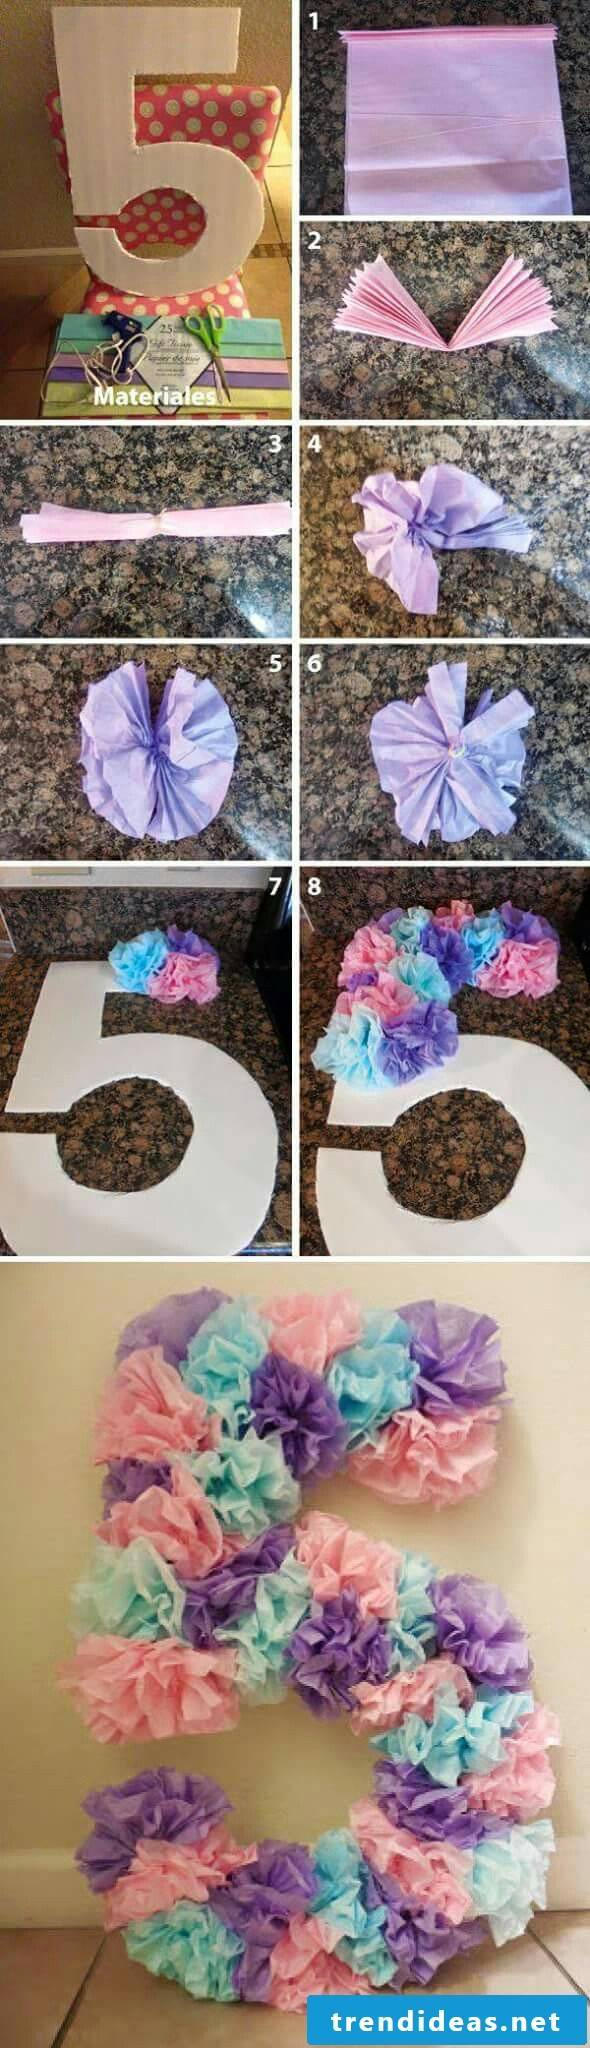 Crafting ideas for children's birthday - party decoration